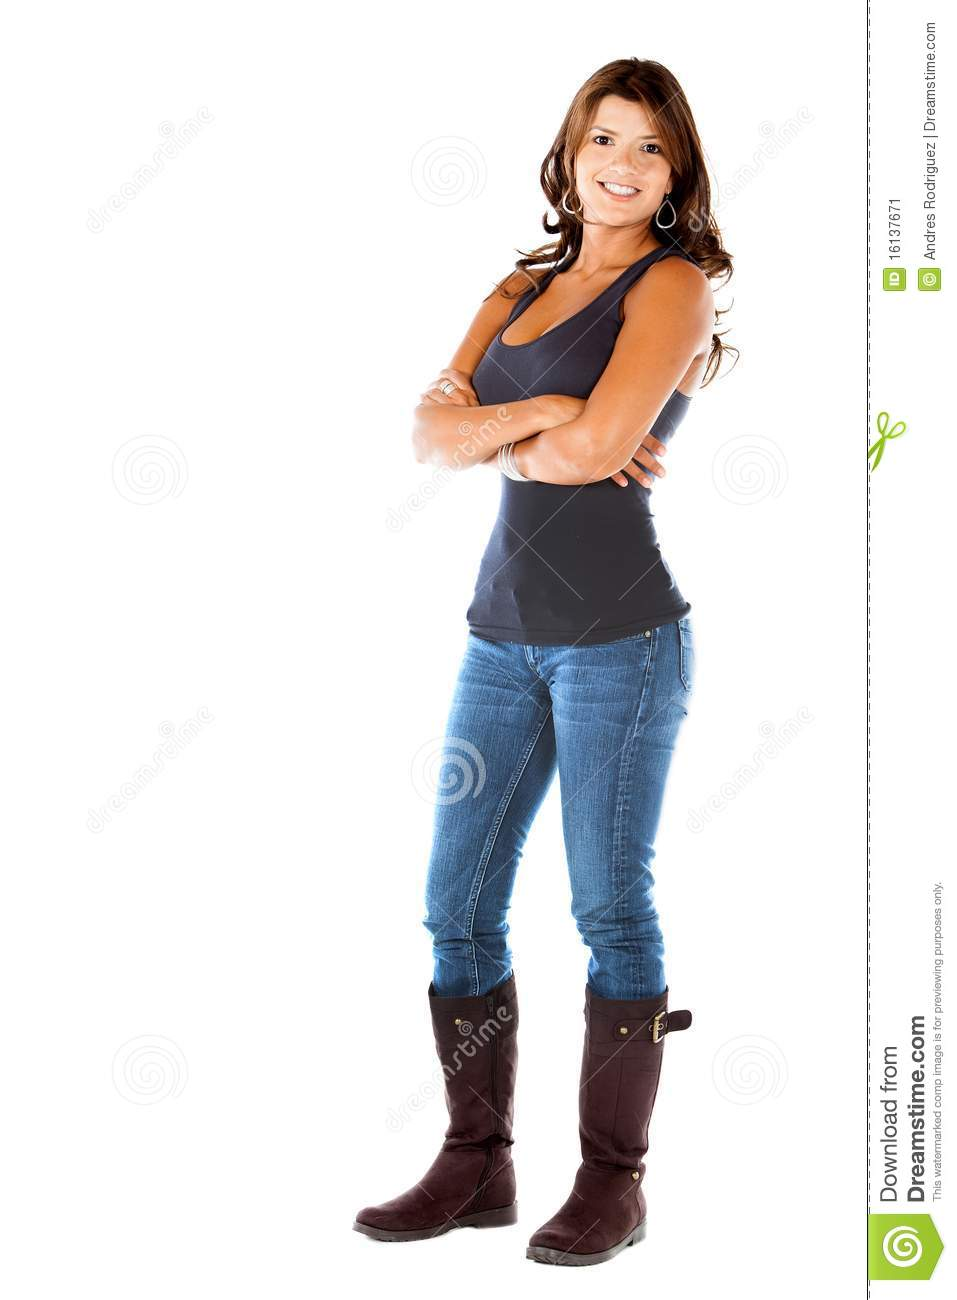 Fullbody casual woman stock image. Image of stand, people ...